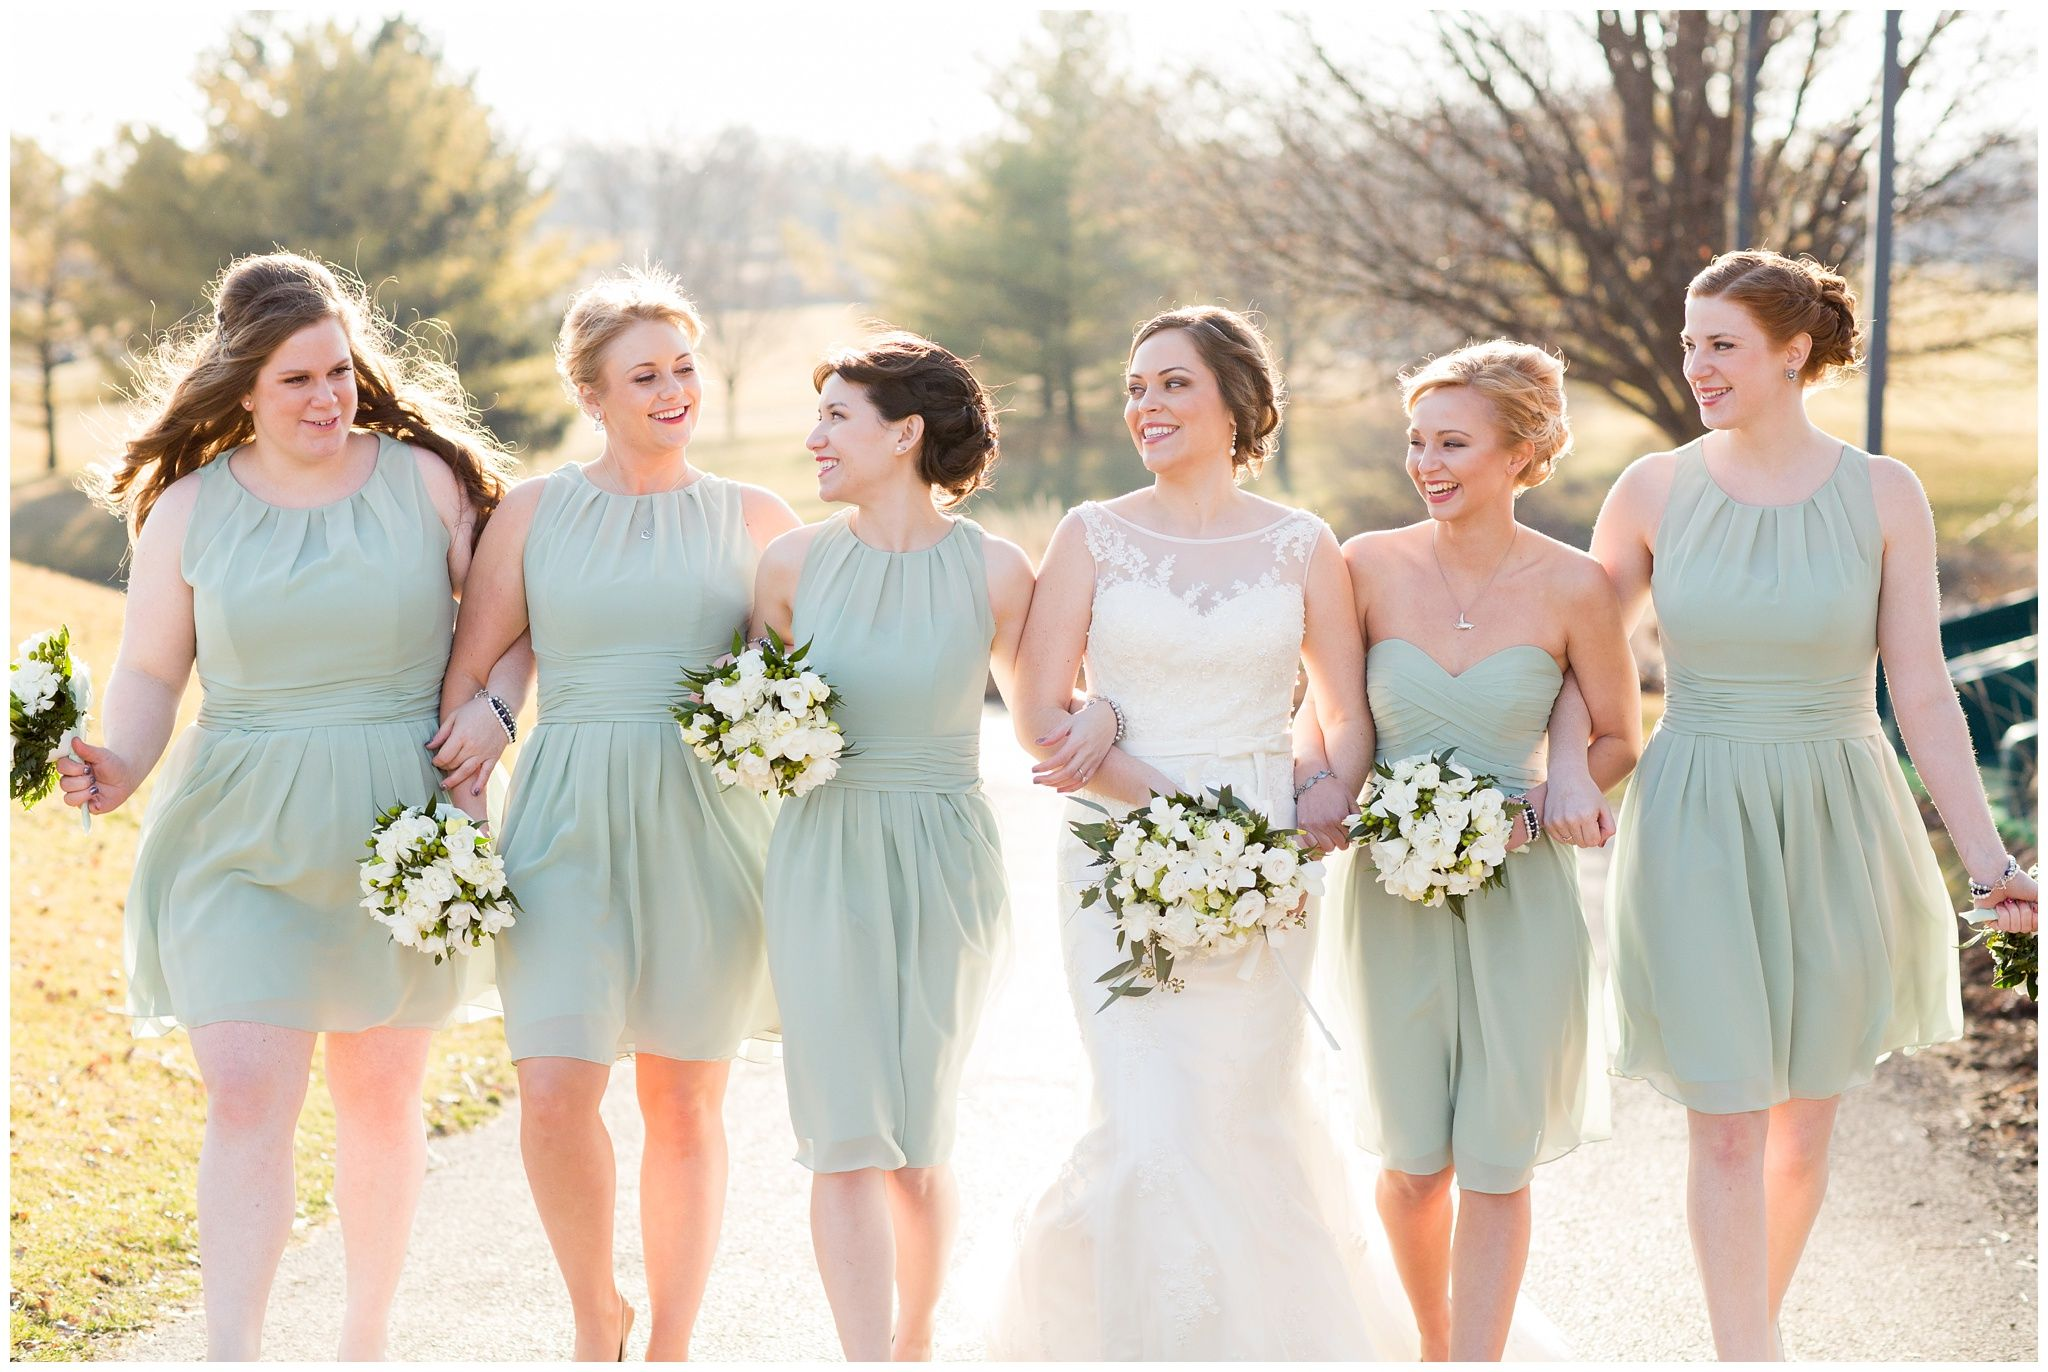 Sage green sorella vita bridesmaid dresses bridesmaid dresses sage green sorella vita bridesmaid dresses ombrellifo Image collections